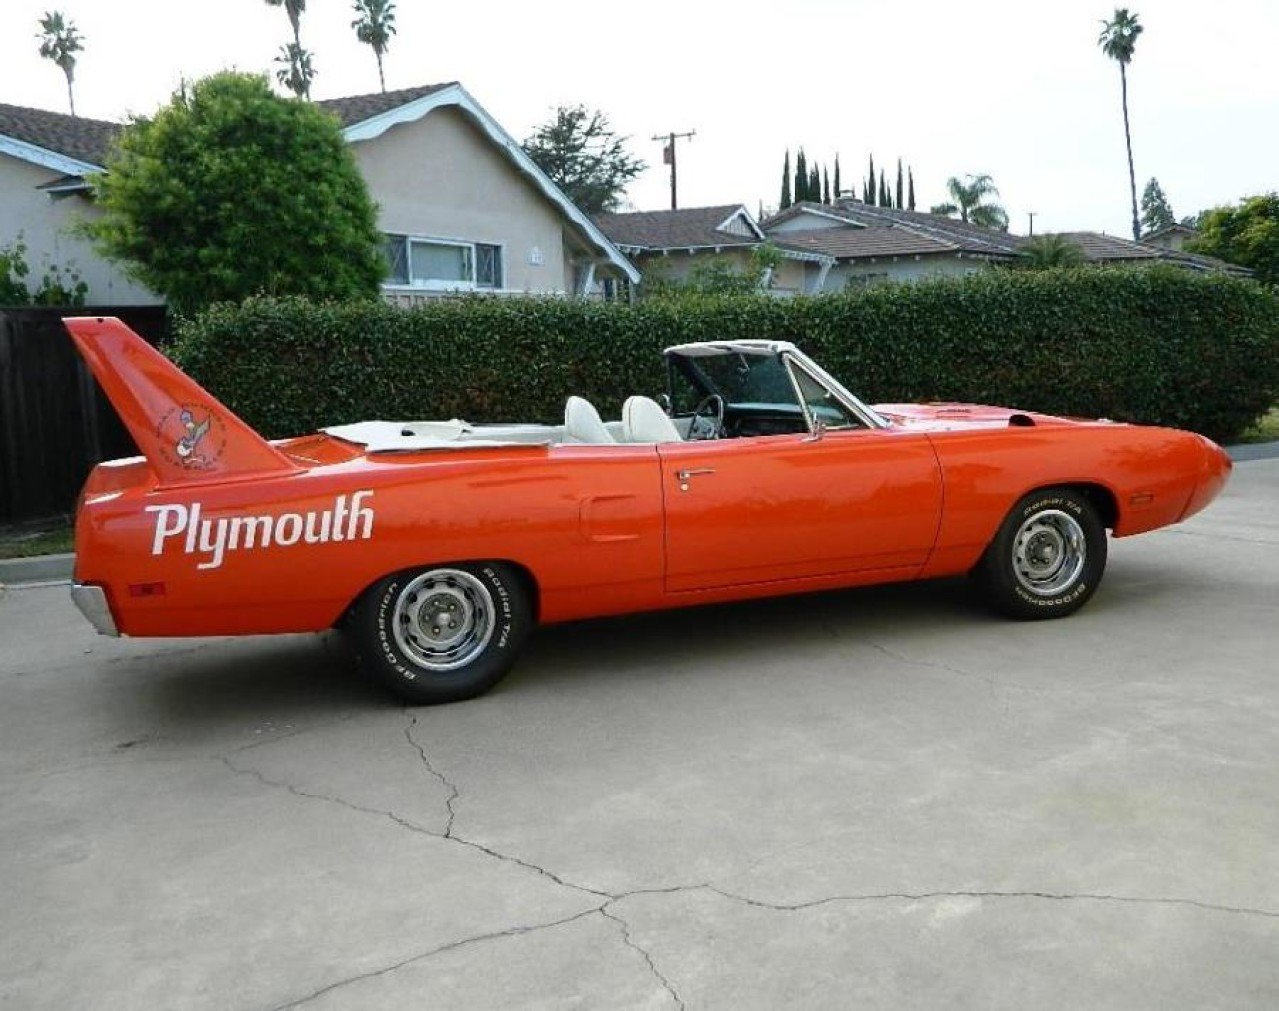 The Plymouth Superbird And Dodge Charger Daytona Chrysler ...